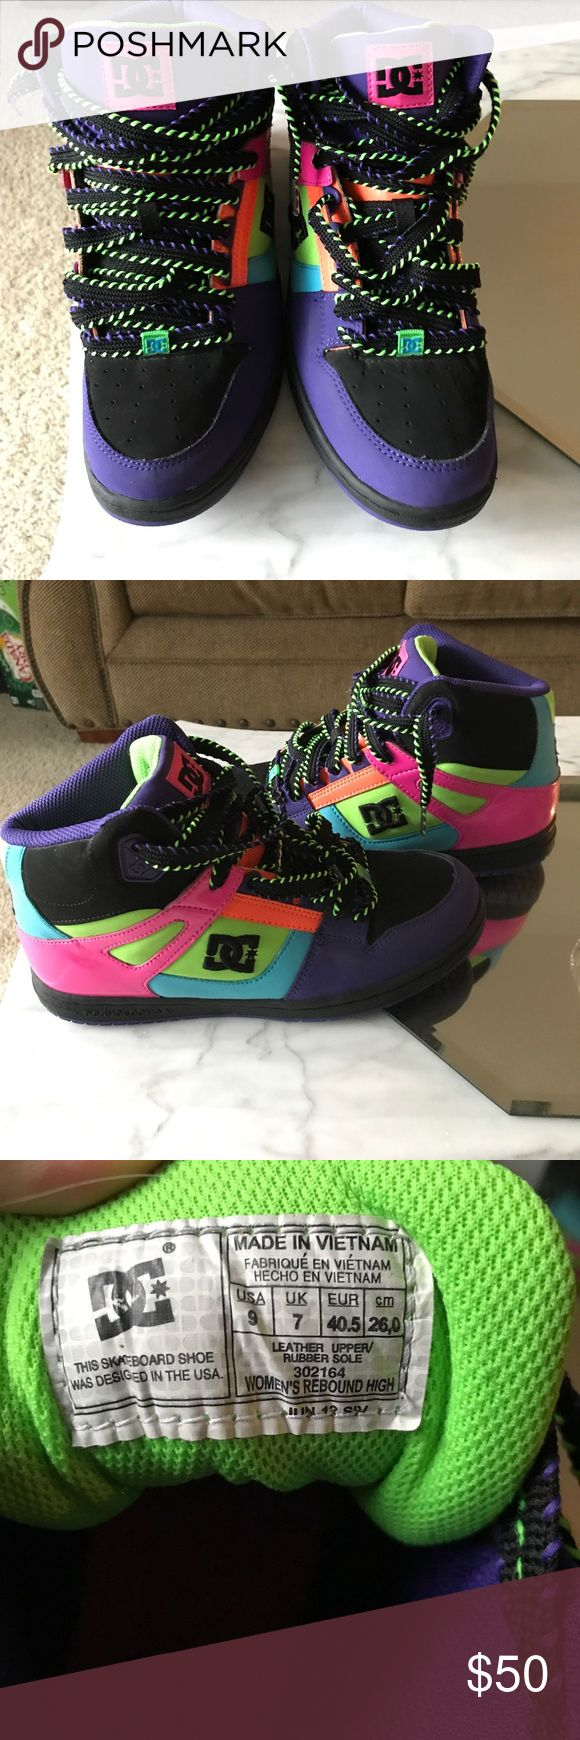 DC. SKATE HIGHTOP 90's style shoes SZ 9 Great condition!! Worn a few times!! SMOKE FREE HOME! DC Shoes Athletic Shoes